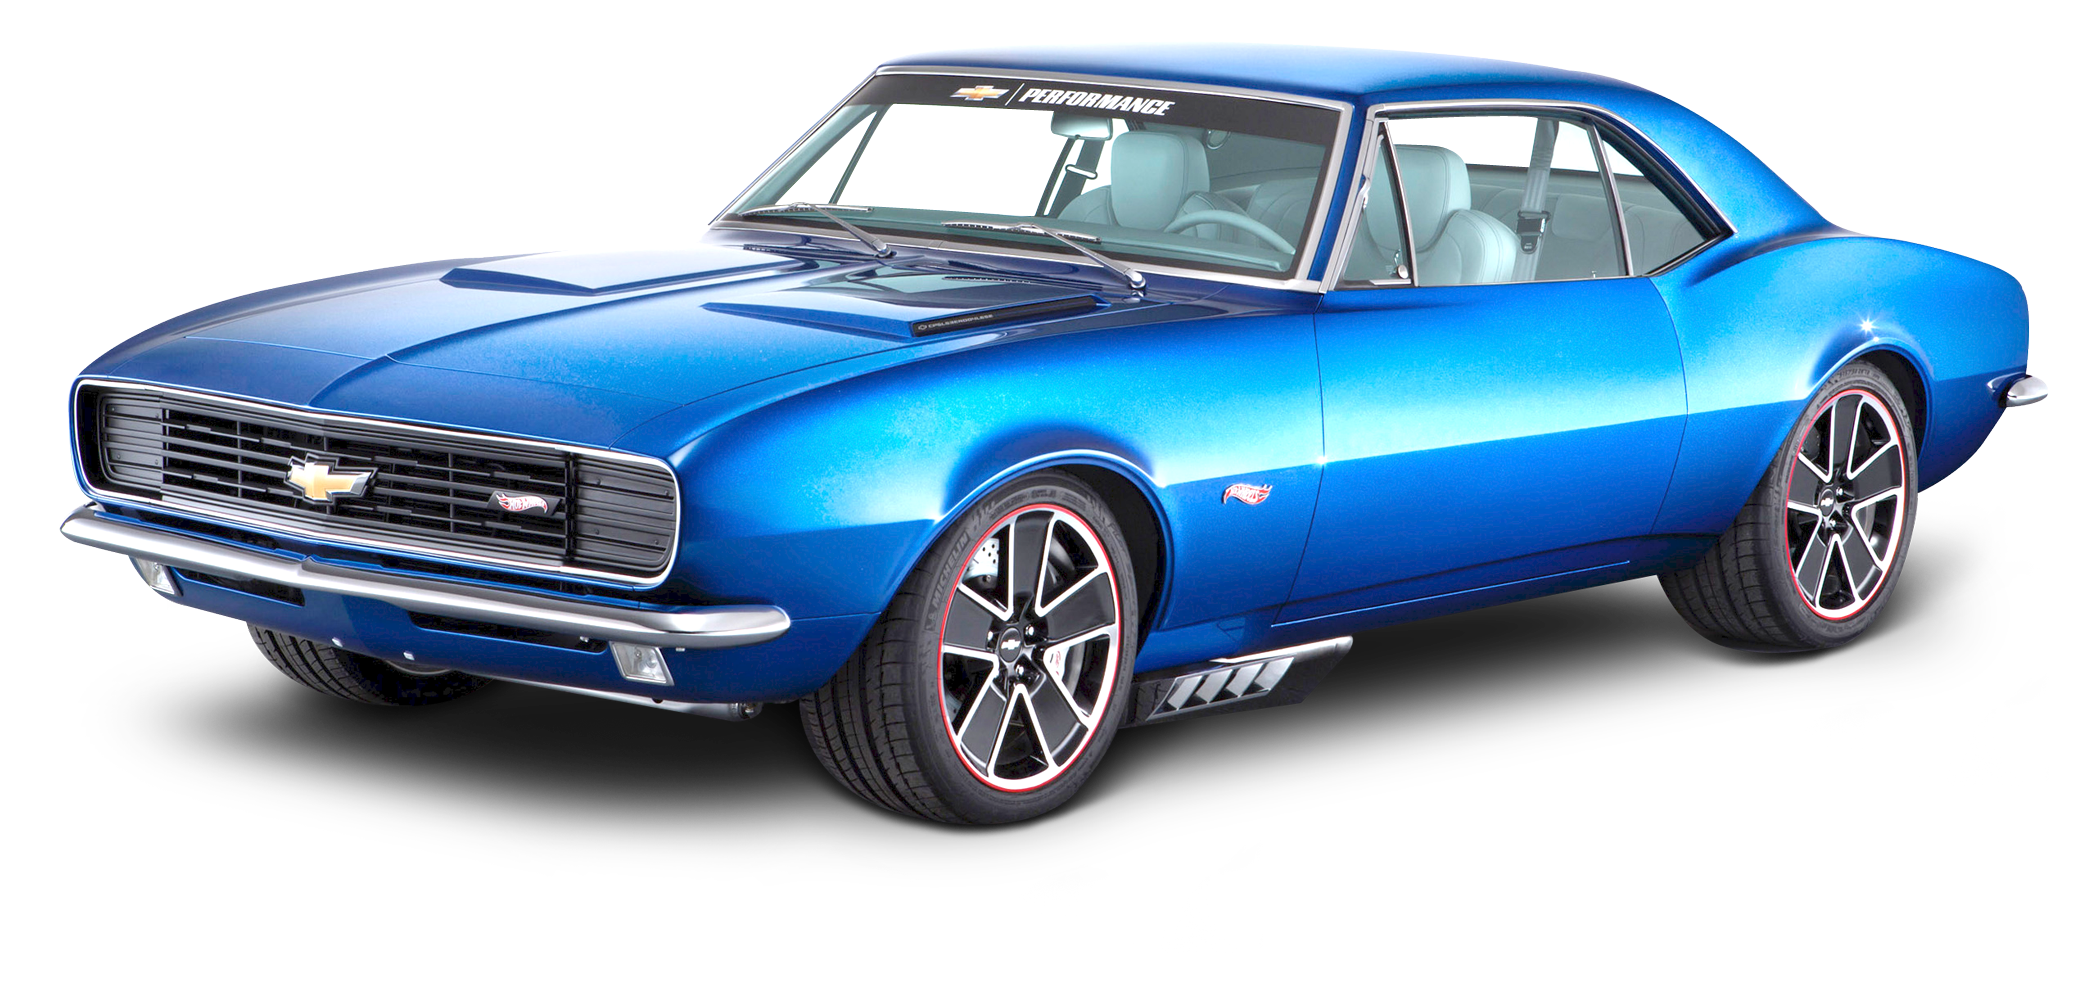 Muscle car png. Blue chevrolet camaro image